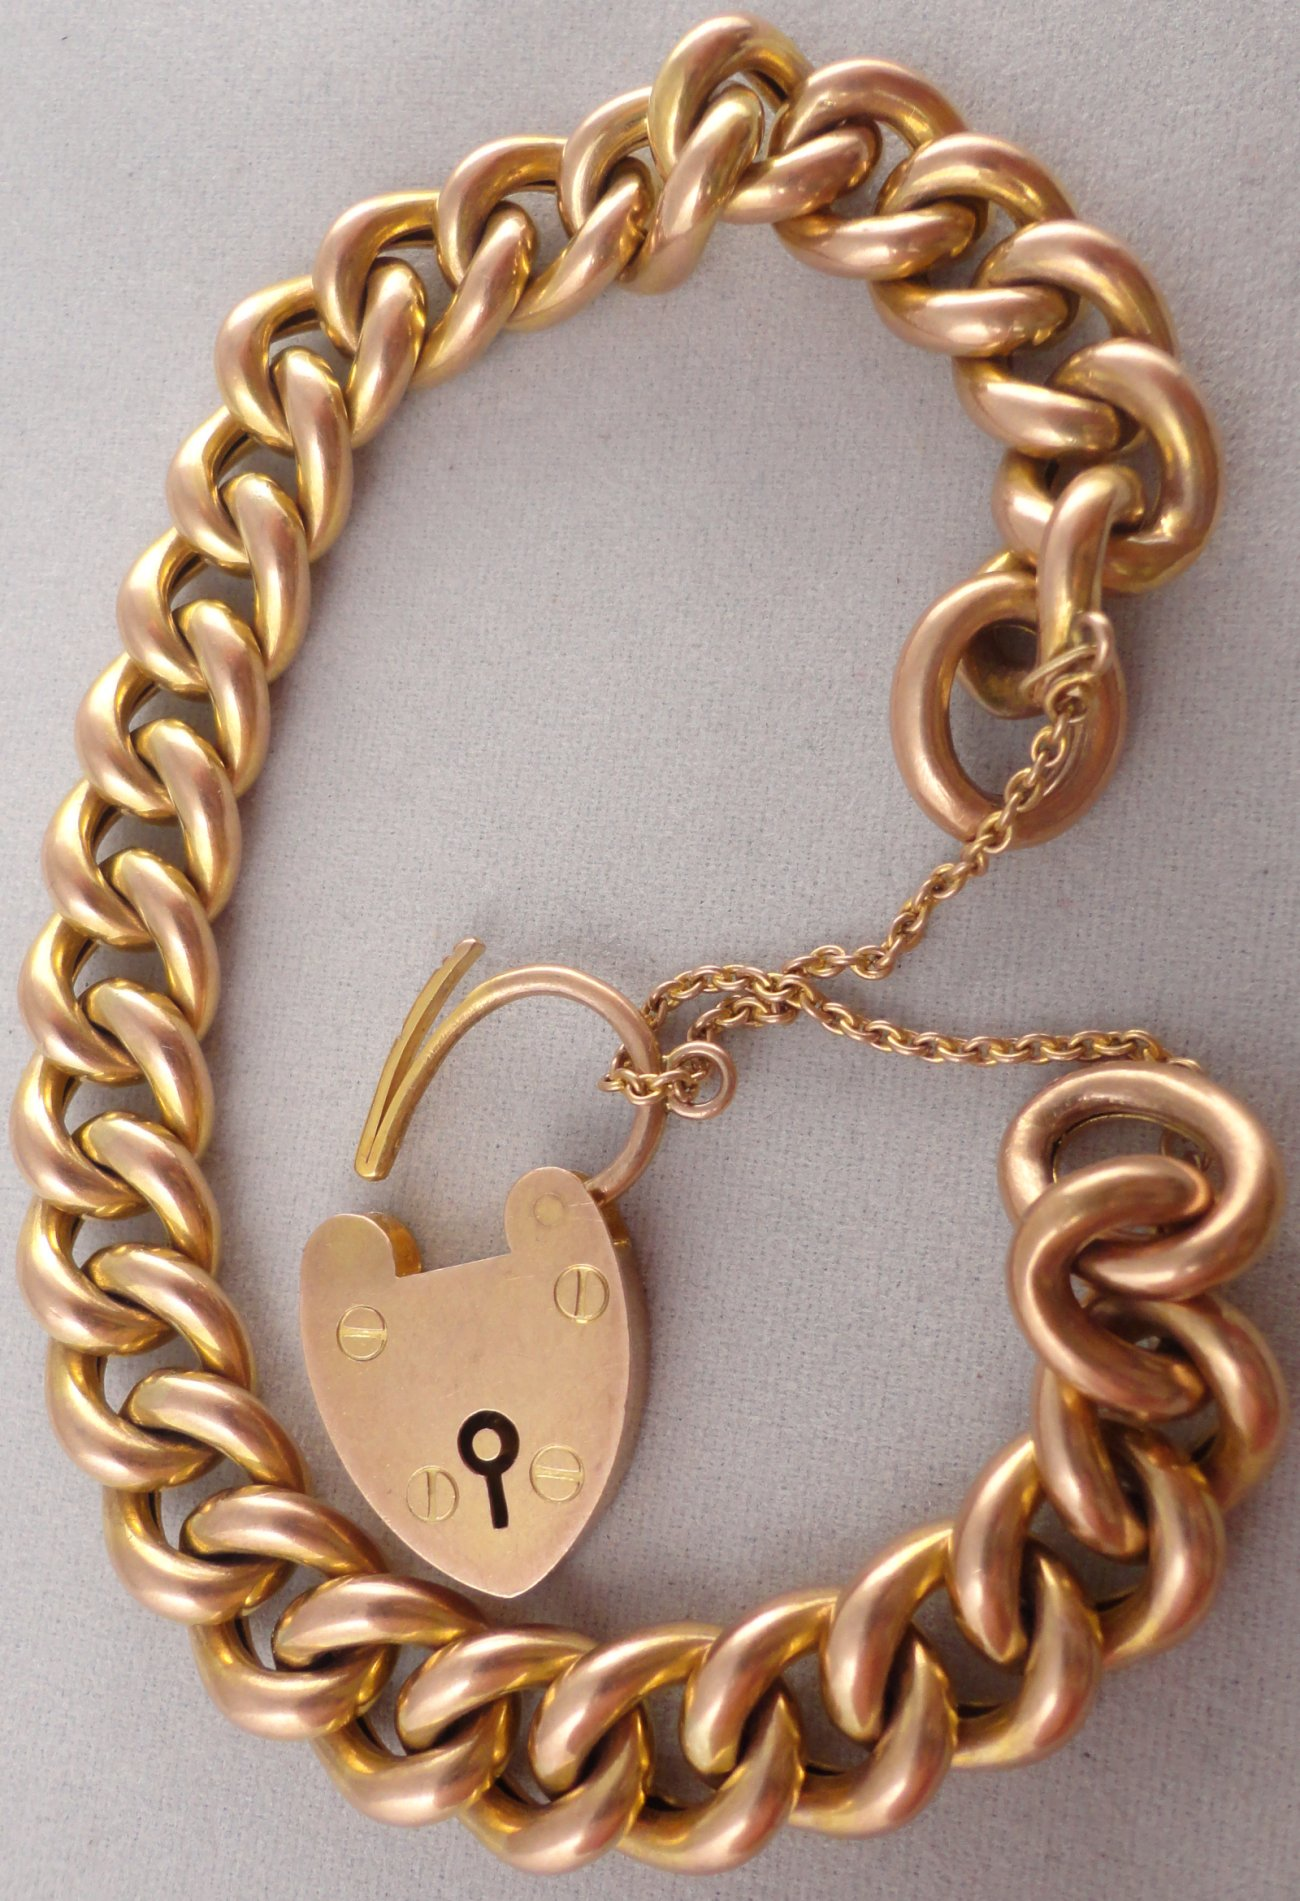 samuel yellow d h number gold bracelet webstore hollow rope product